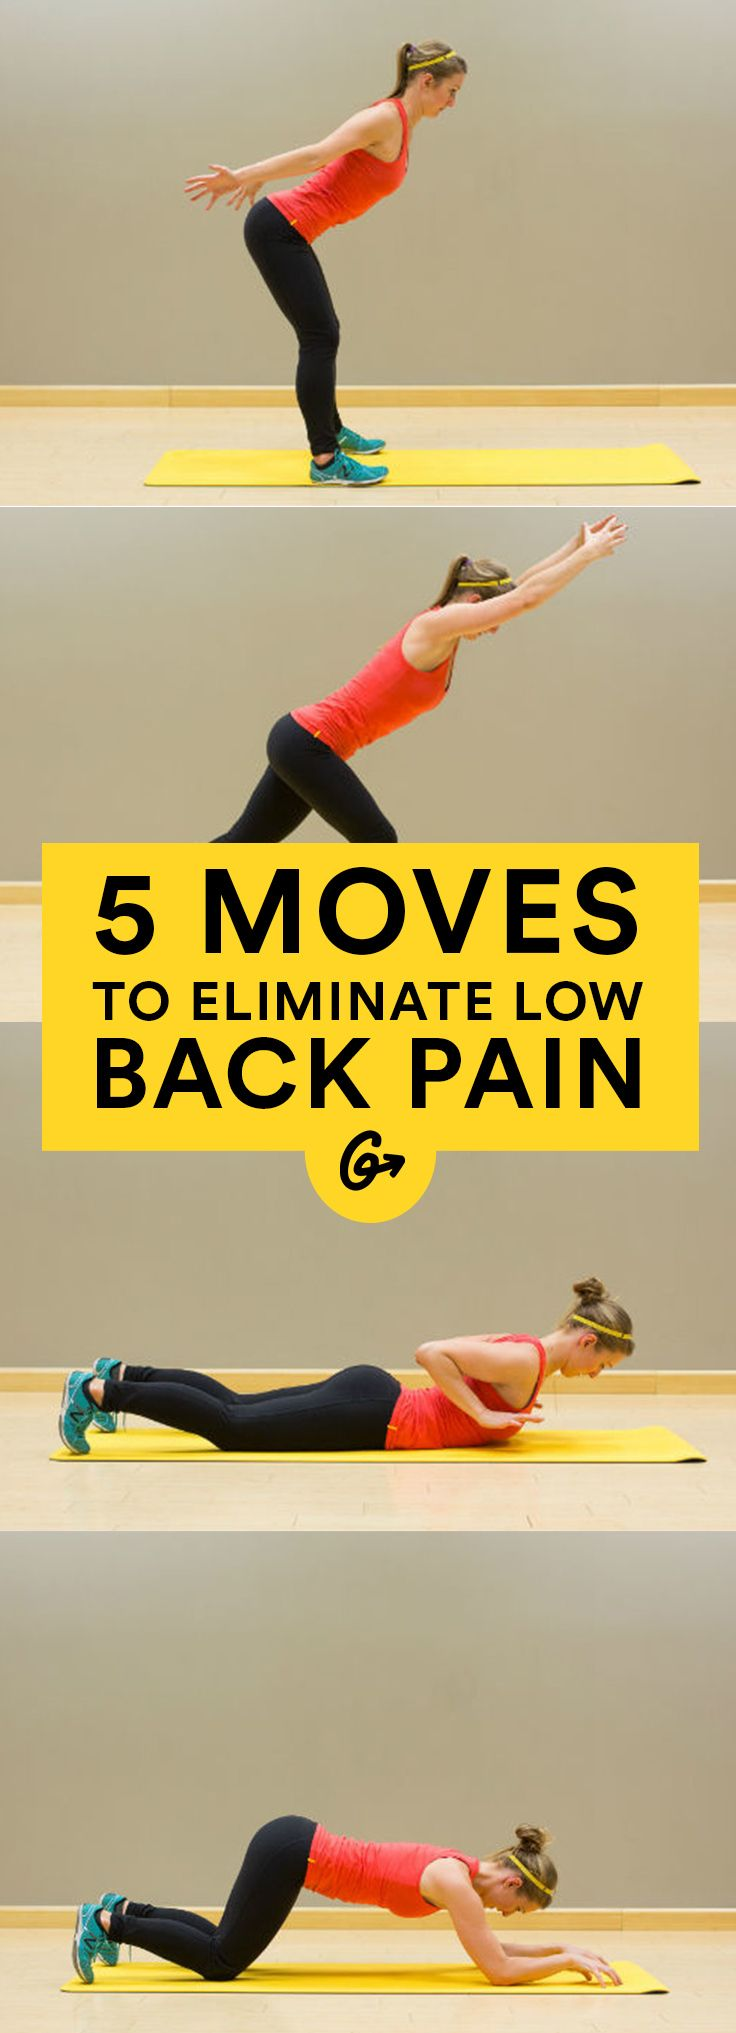 One of the most effective solutions for eliminating chronic low back pain is the (totally free!) regular practice of back-strengthening exercises http://greatist.com/move/exercises-to-help-chronic-back-pain